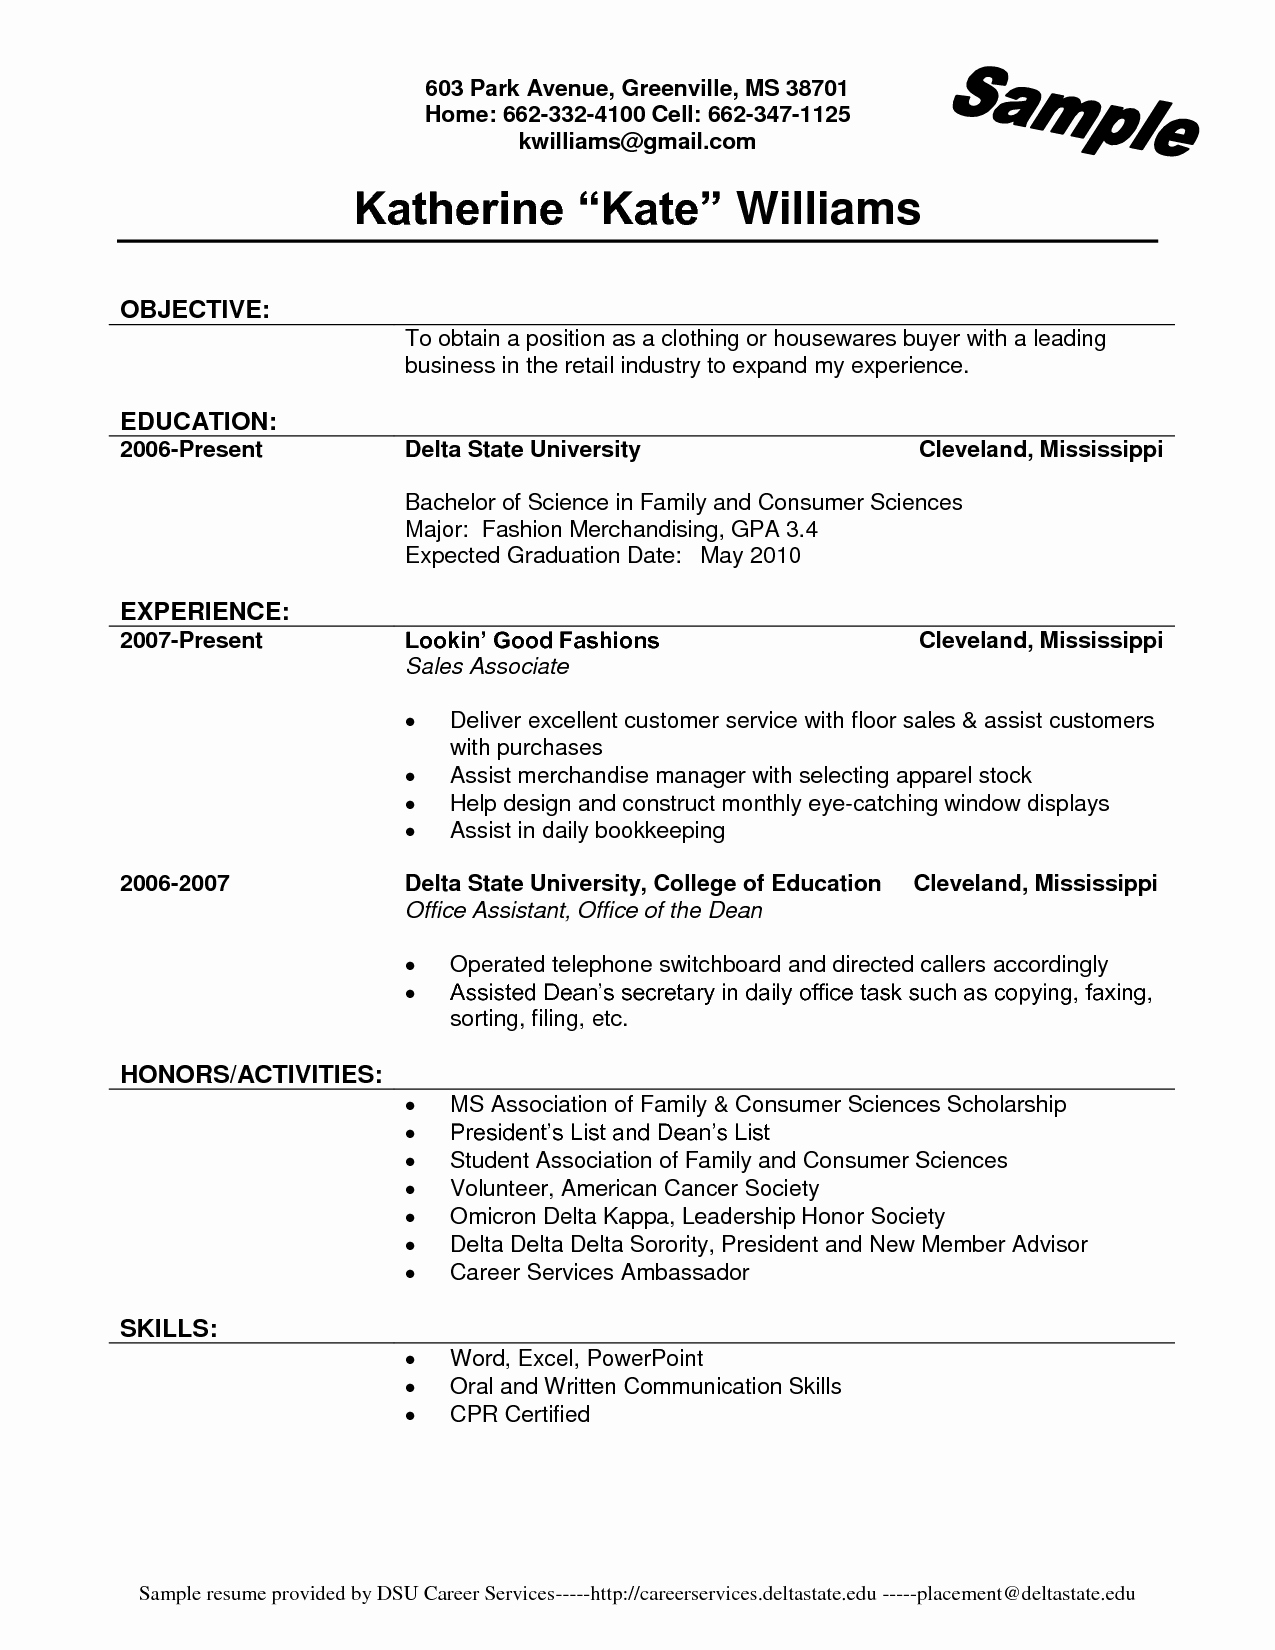 Job Description A Sales Associate For A Resume